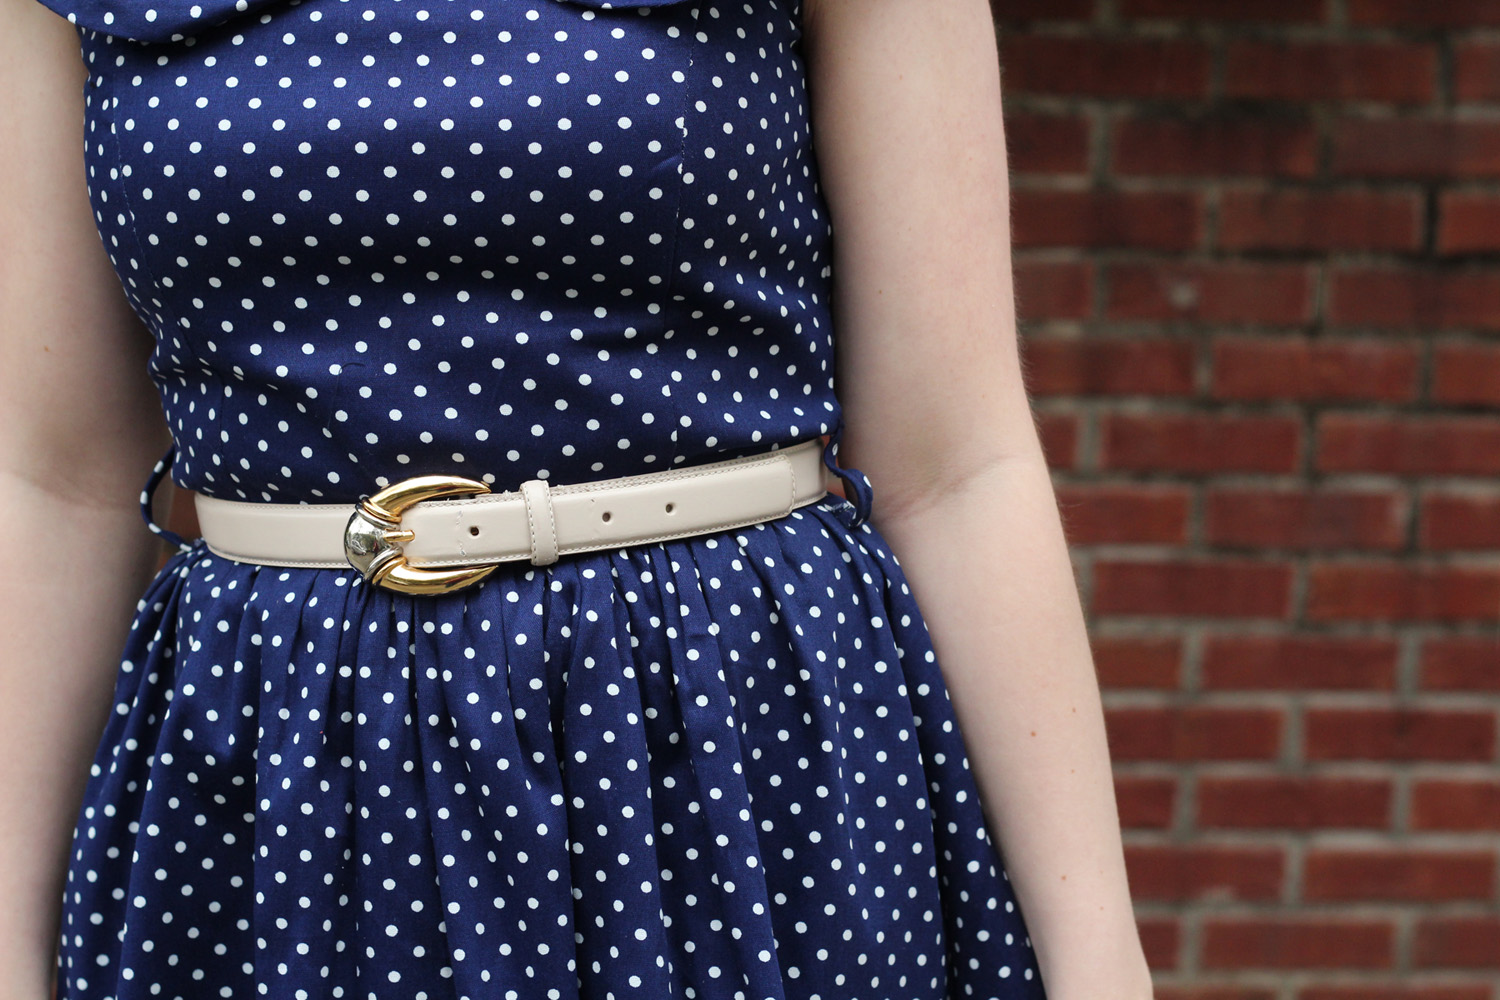 Navy Blue Polka Dot Lindy Bop Dress with an Off White Mixed Metal Belt